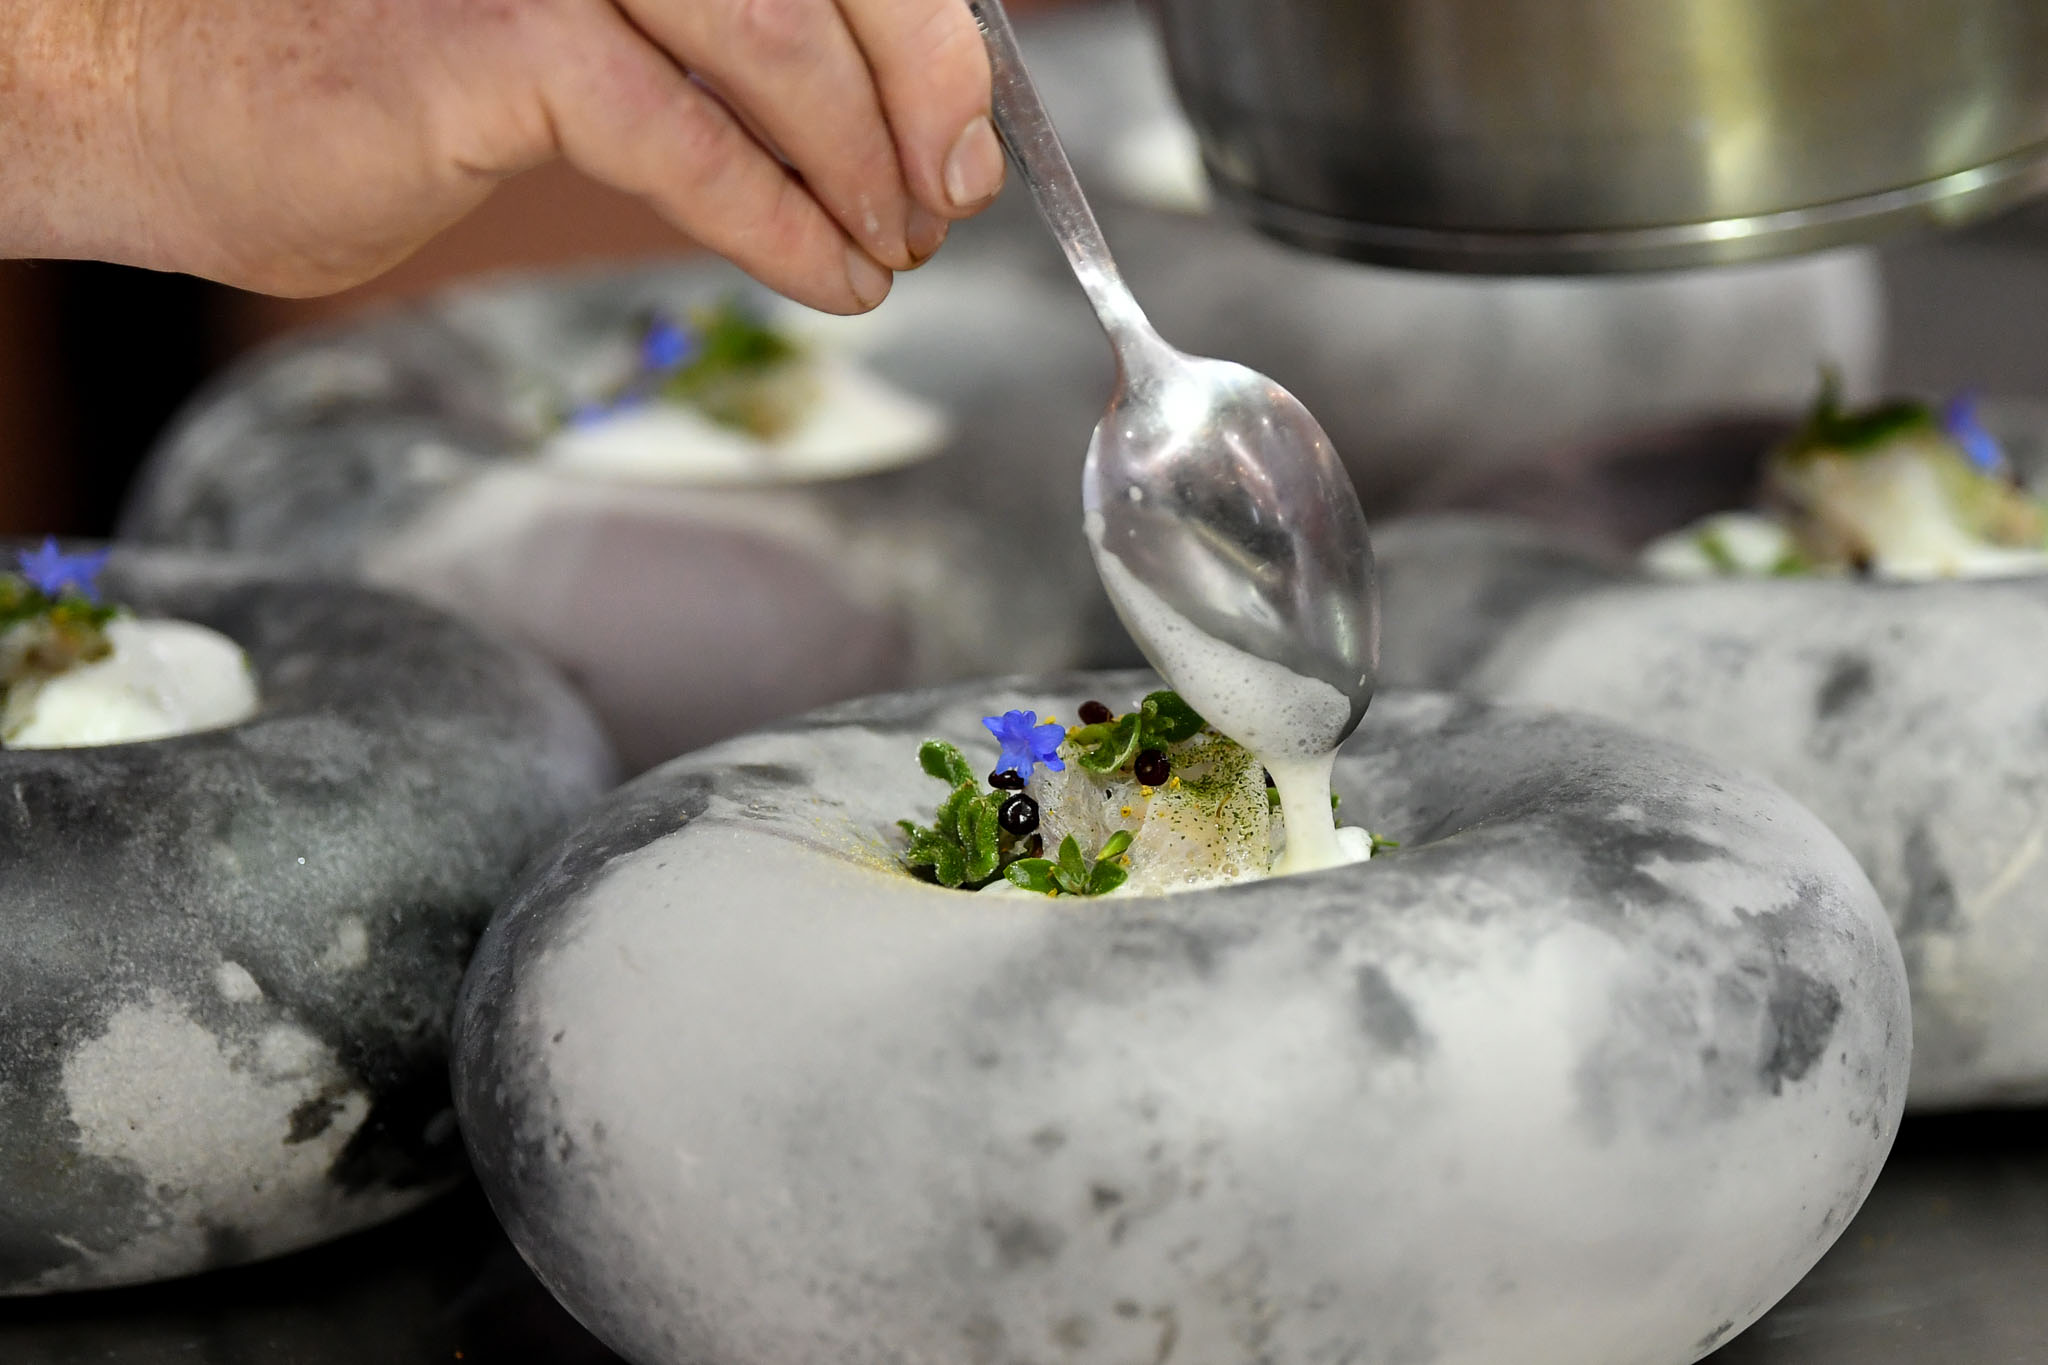 Melbourne, 30 May 2017 - Michael Cole of the Georgie Bass Café & Cookery in Flinders plates up his fish dish at the Australian selection trials of the Bocuse d'Or culinary competition held during the Food Service Australia show at the Royal Exhibition Building in Melbourne, Australia. Photo Sydney Low